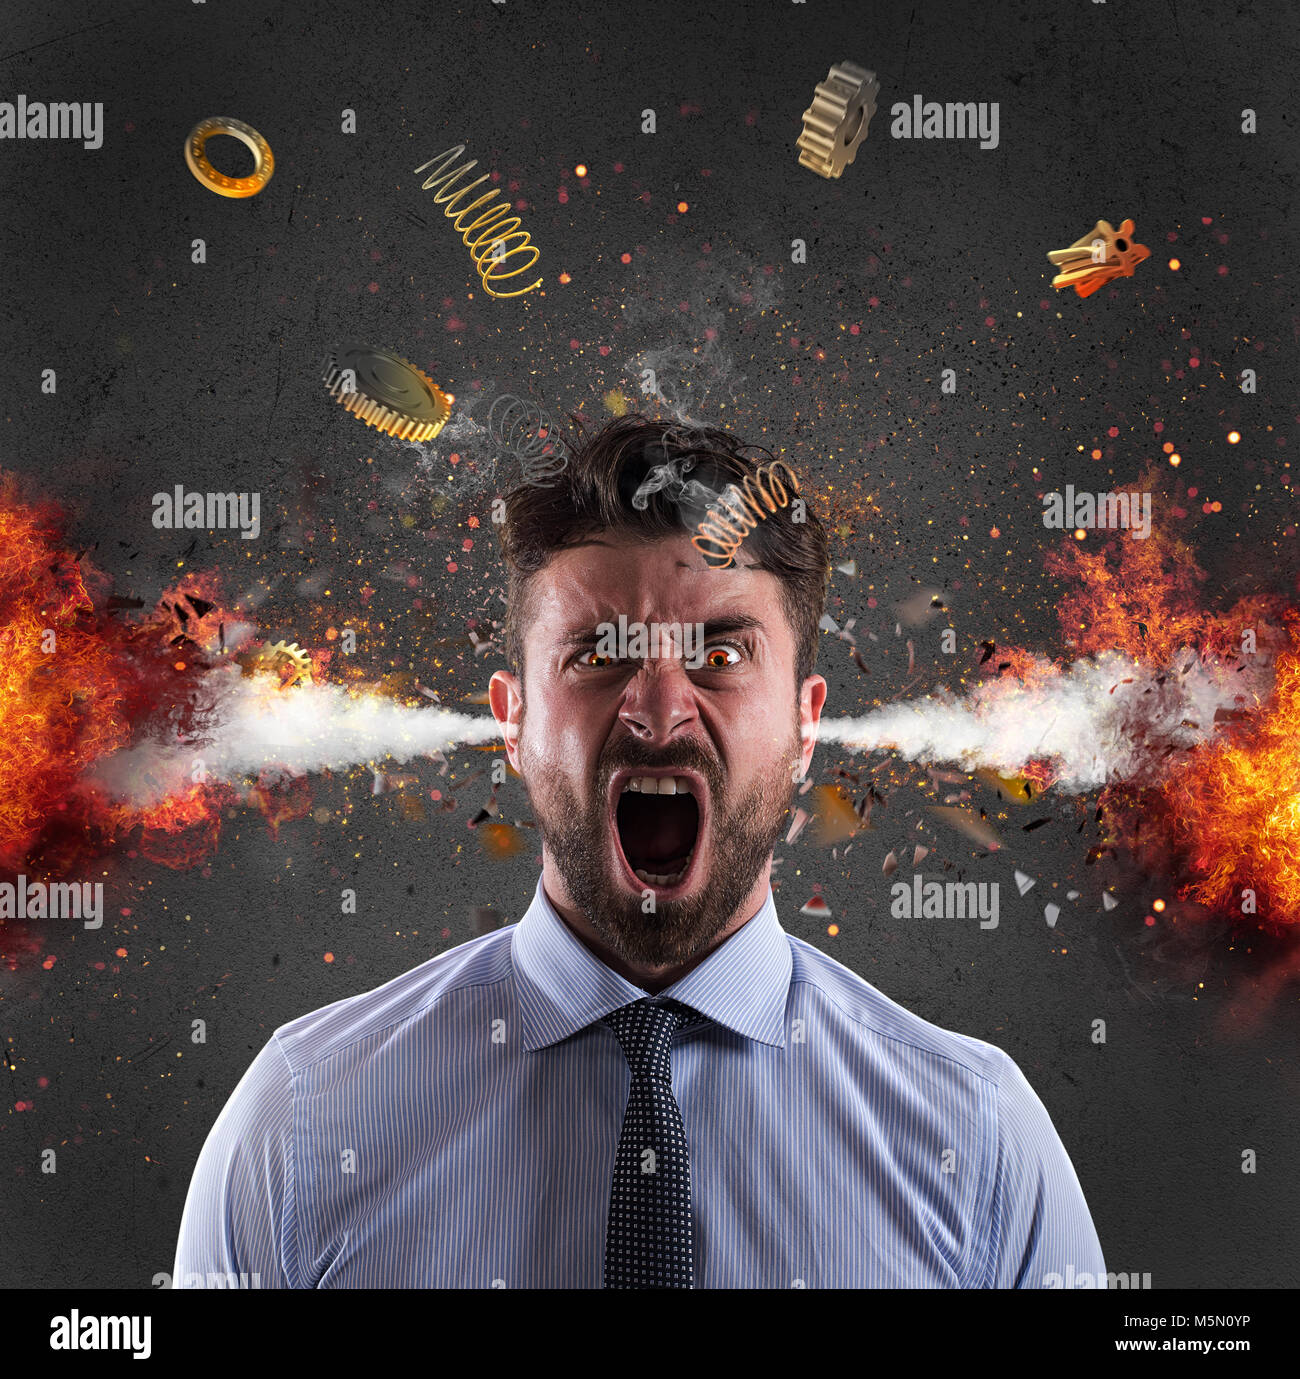 Head explosion of a businessman. concept of stress due to overwork - Stock Image